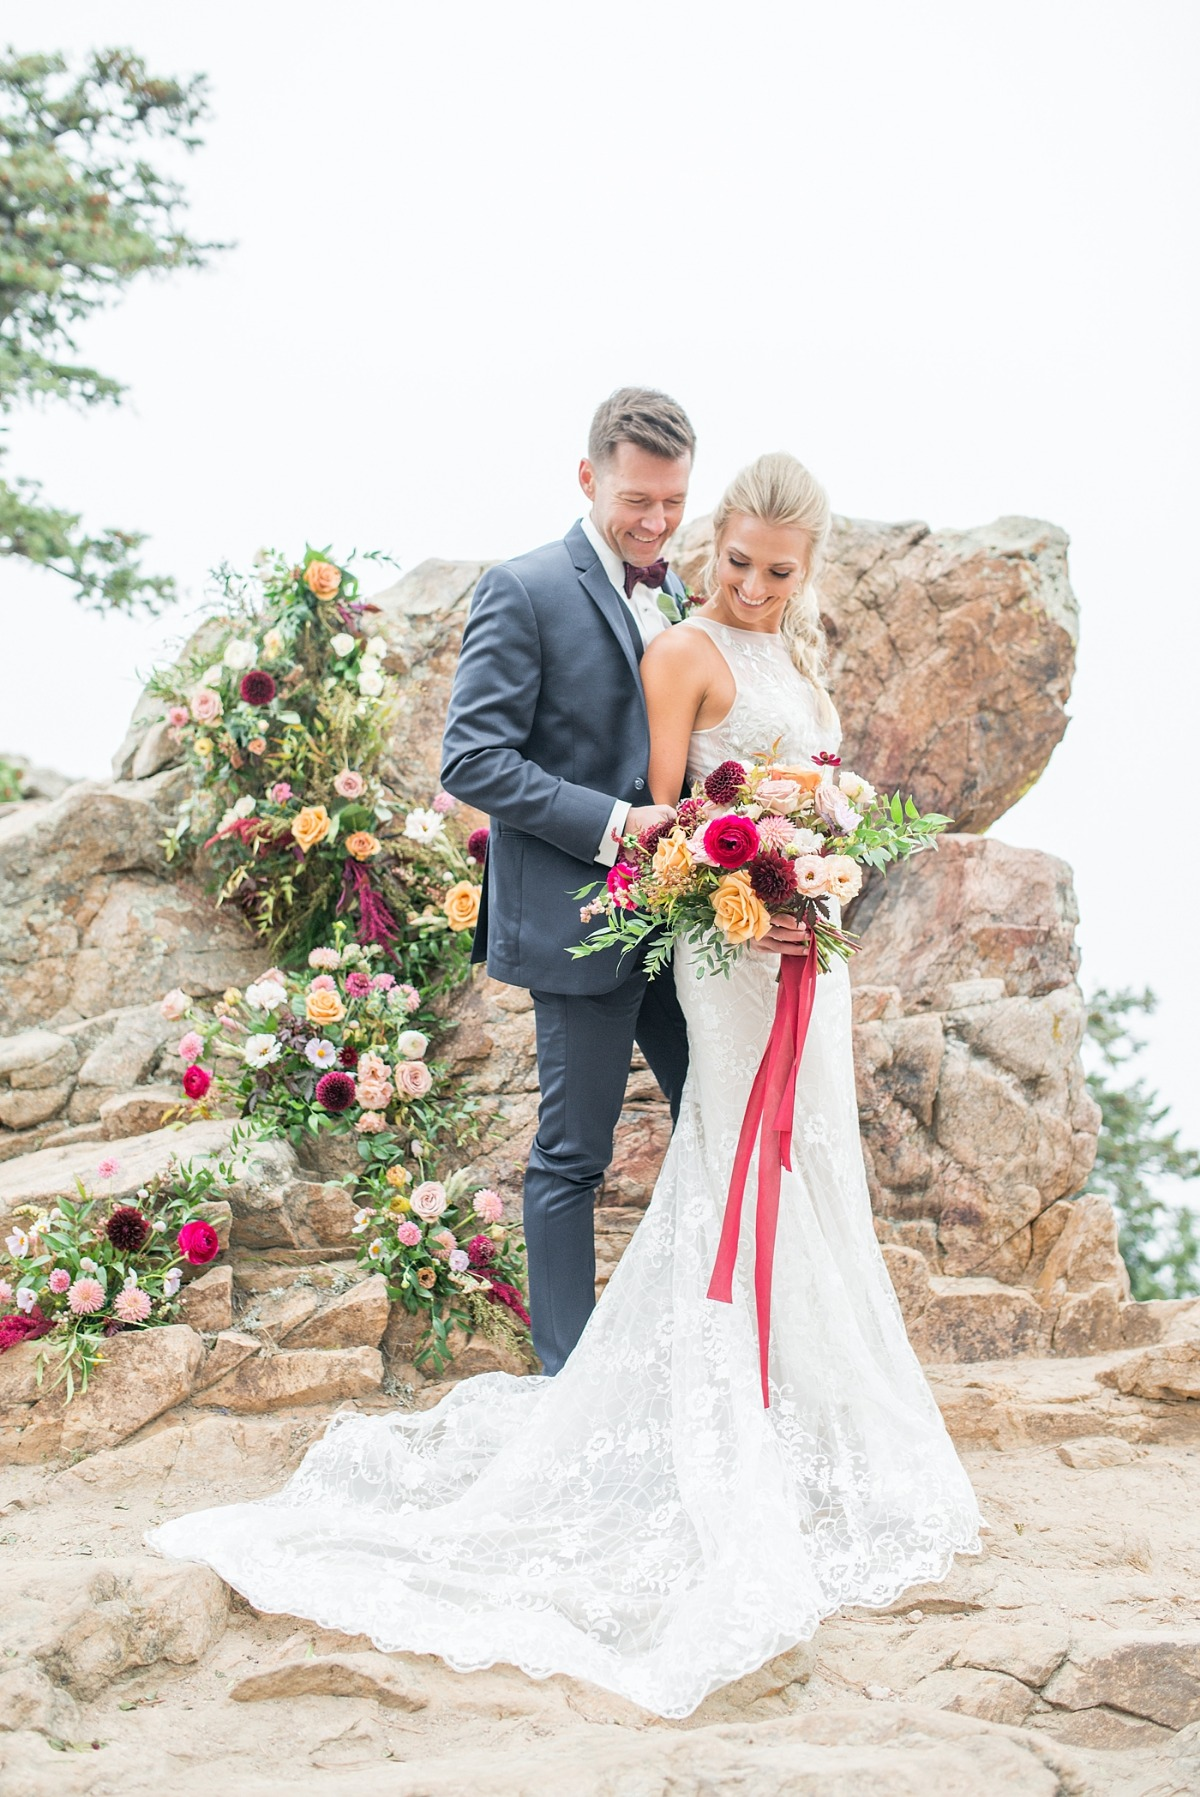 Gorgeous mountain top wedding ideas